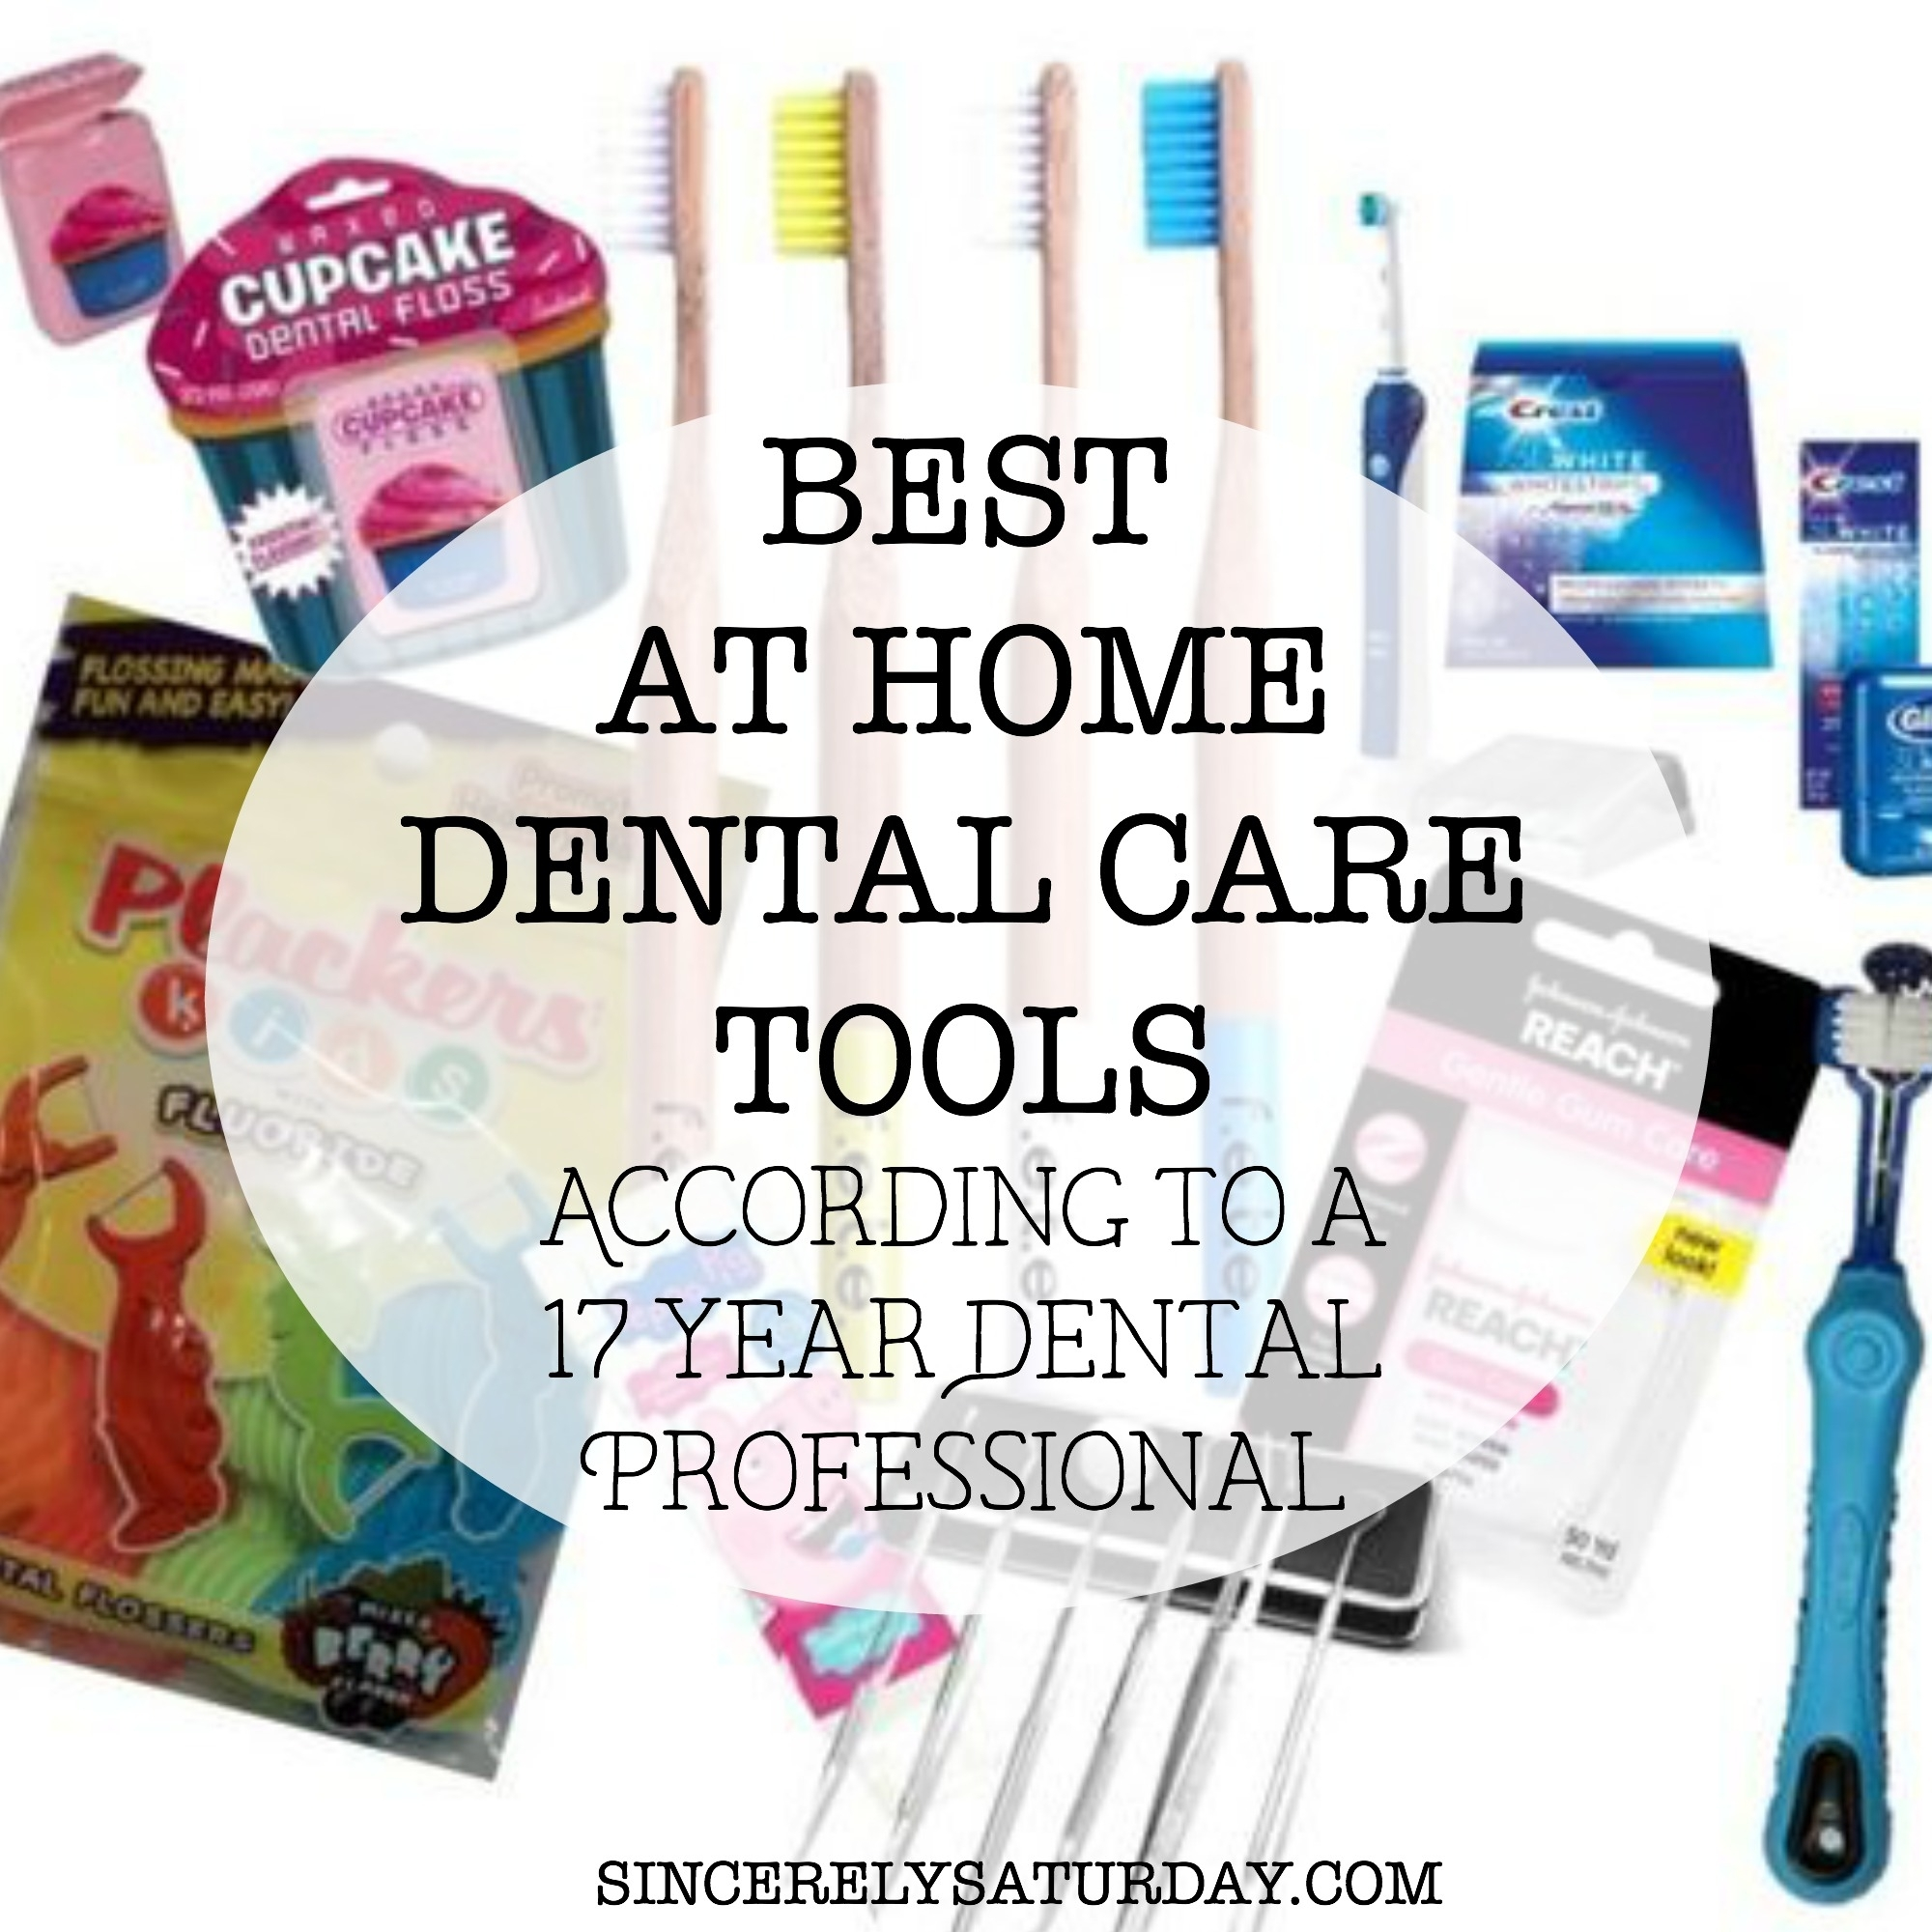 BEST AT HOME DENTAL TOOLS: ACCORDING TO A 17 YEAR DENTAL PROFESSIONAL - WISH LIST WEDNESDAY 16